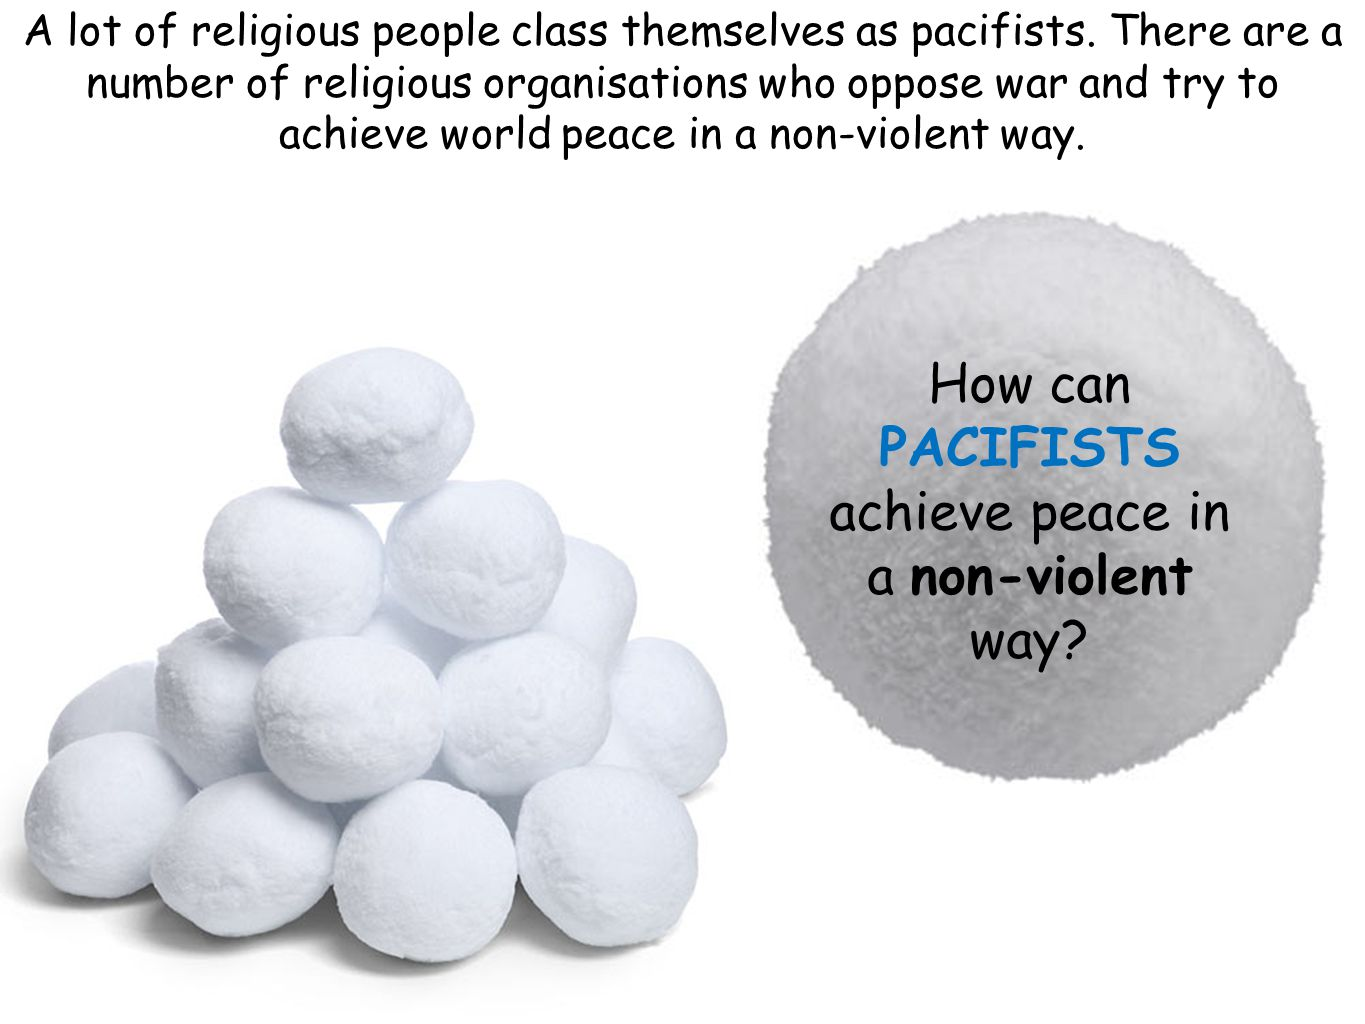 How can PACIFISTS achieve peace in a non-violent way